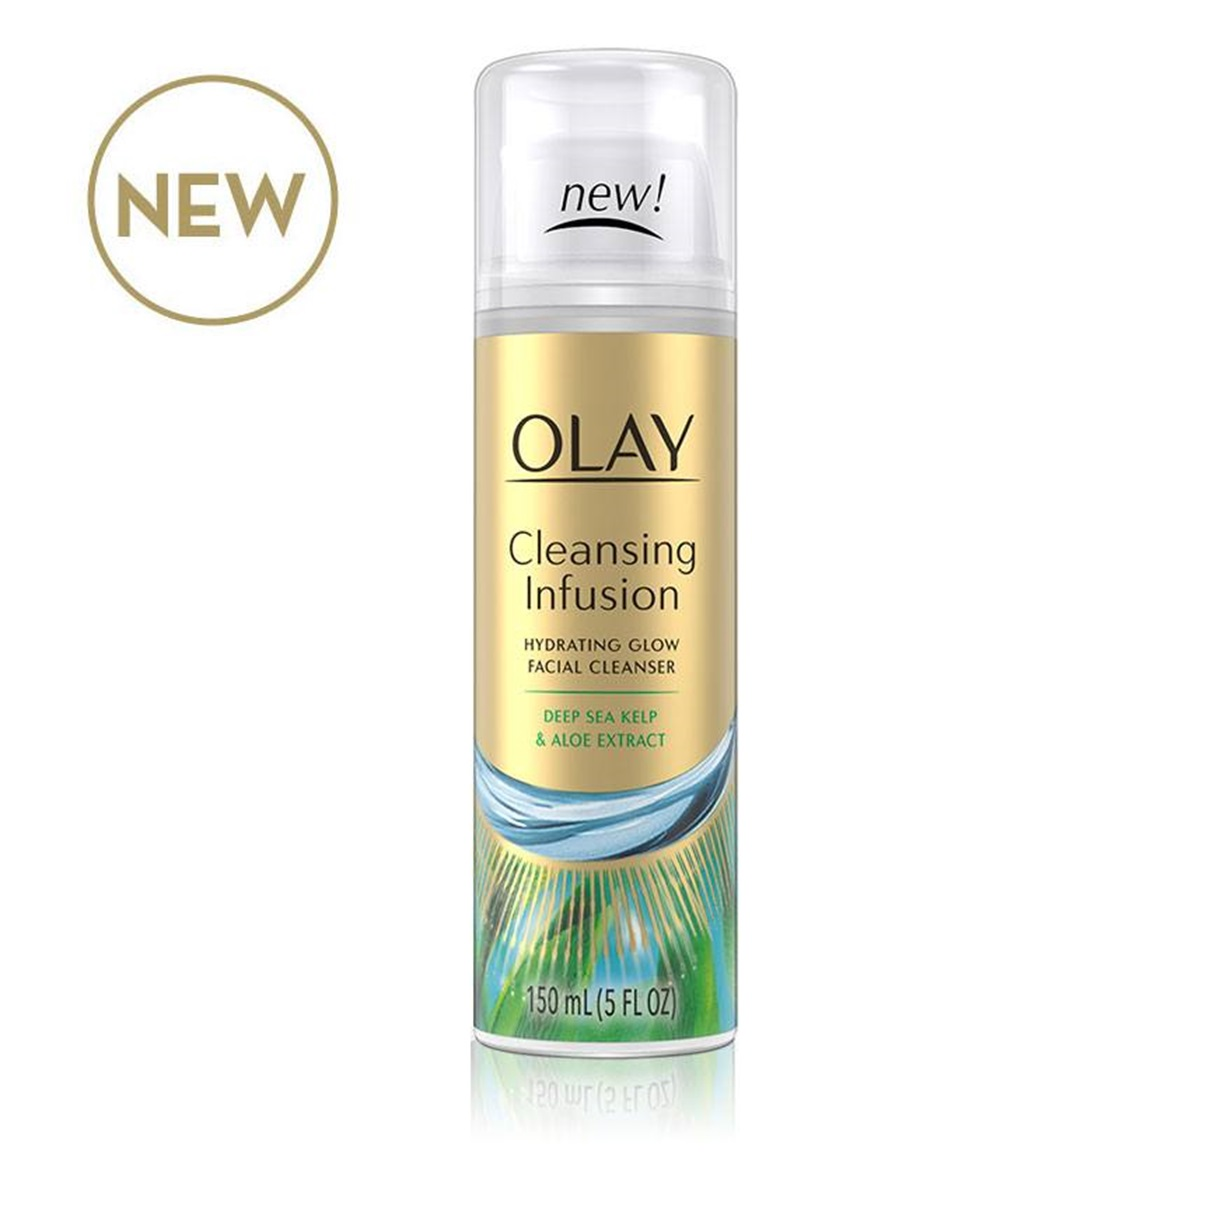 Review olay cleansing infusion hydrating glow facial cleanser olay there is a new cleanser in town and it is a good one this foaming mousse cleanser leaves face cleaner than ever before with its unique way of drawing out malvernweather Image collections